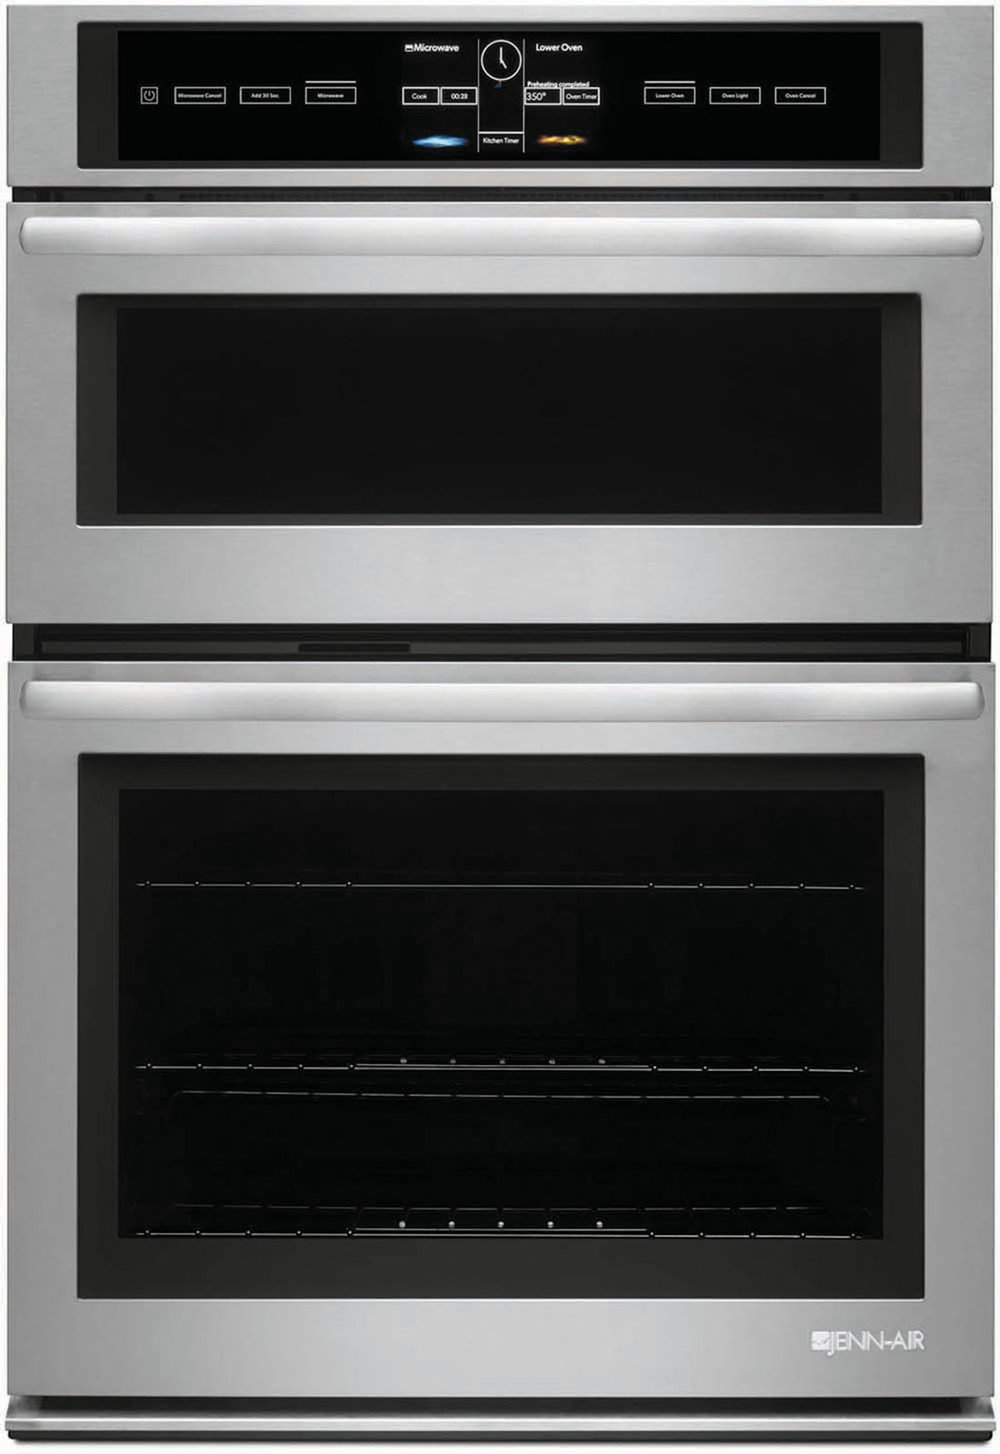 """Jenn-Air 30"""" Microwave/Wall Oven with V2 Vertical Dual-Fan Convection System At Trail Appliances, (604) 278-6133, jennairblack.ca"""